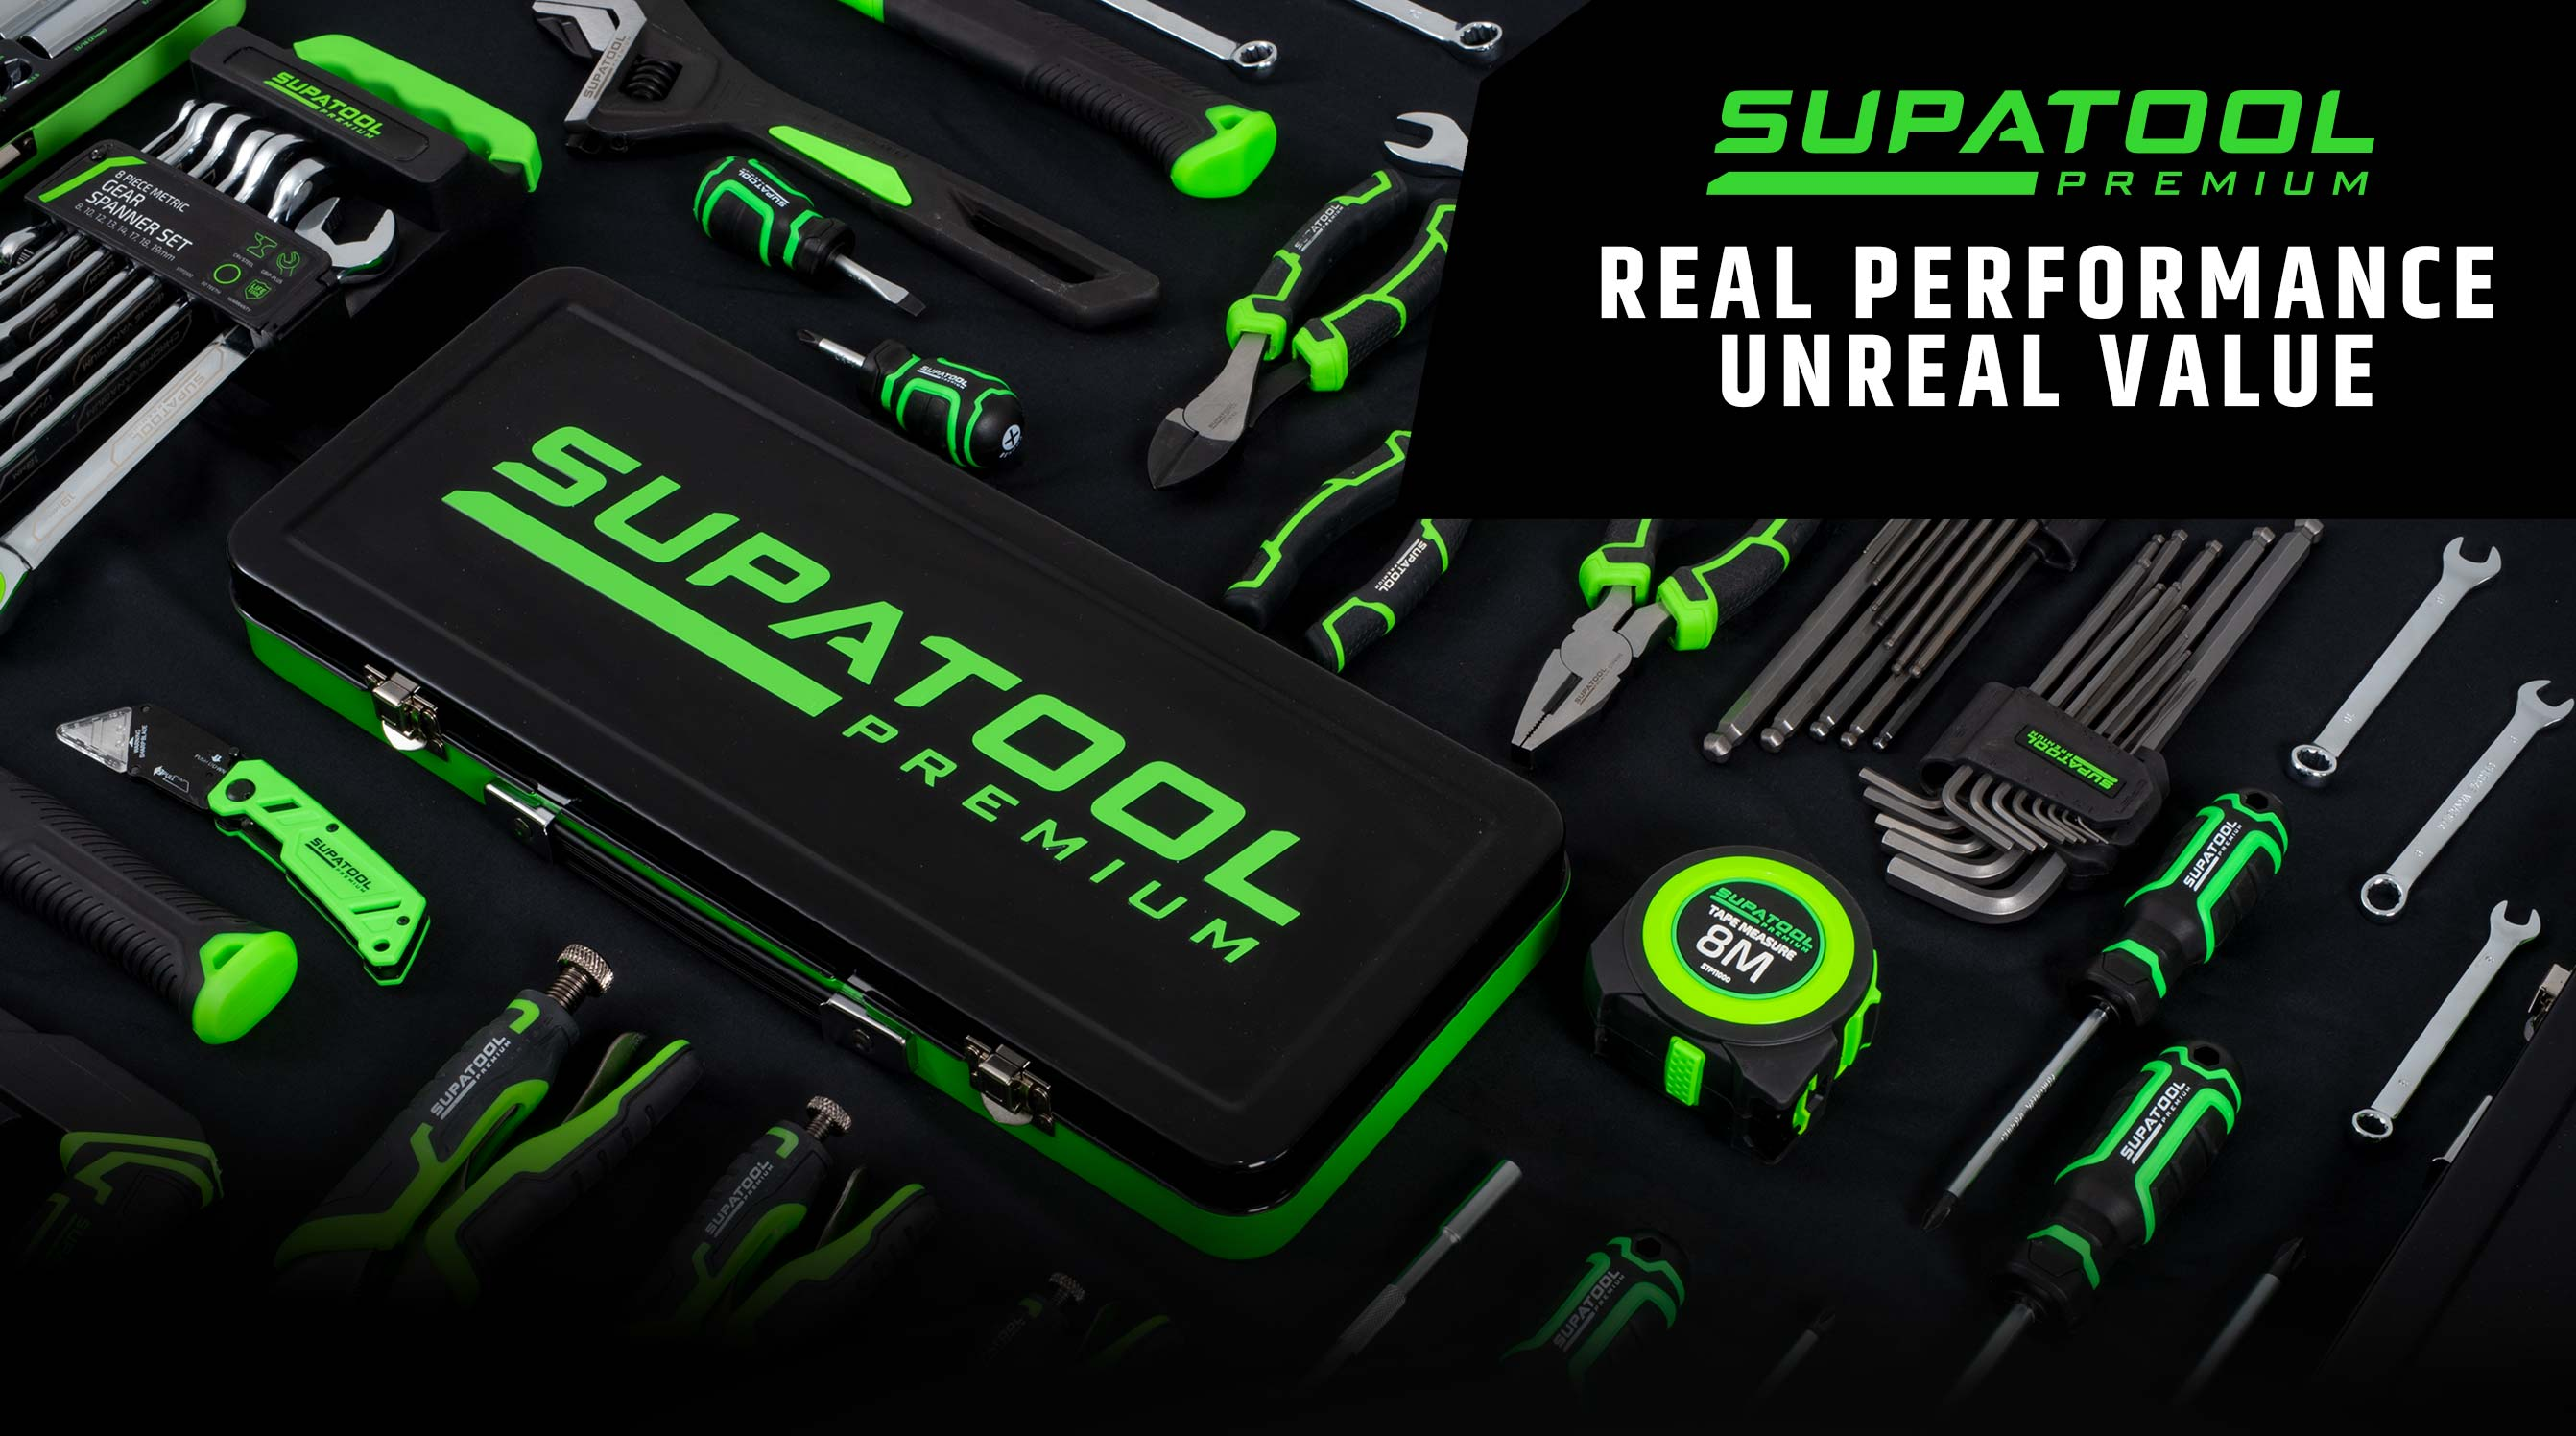 Supatool Premium Real Performance Unreal Value